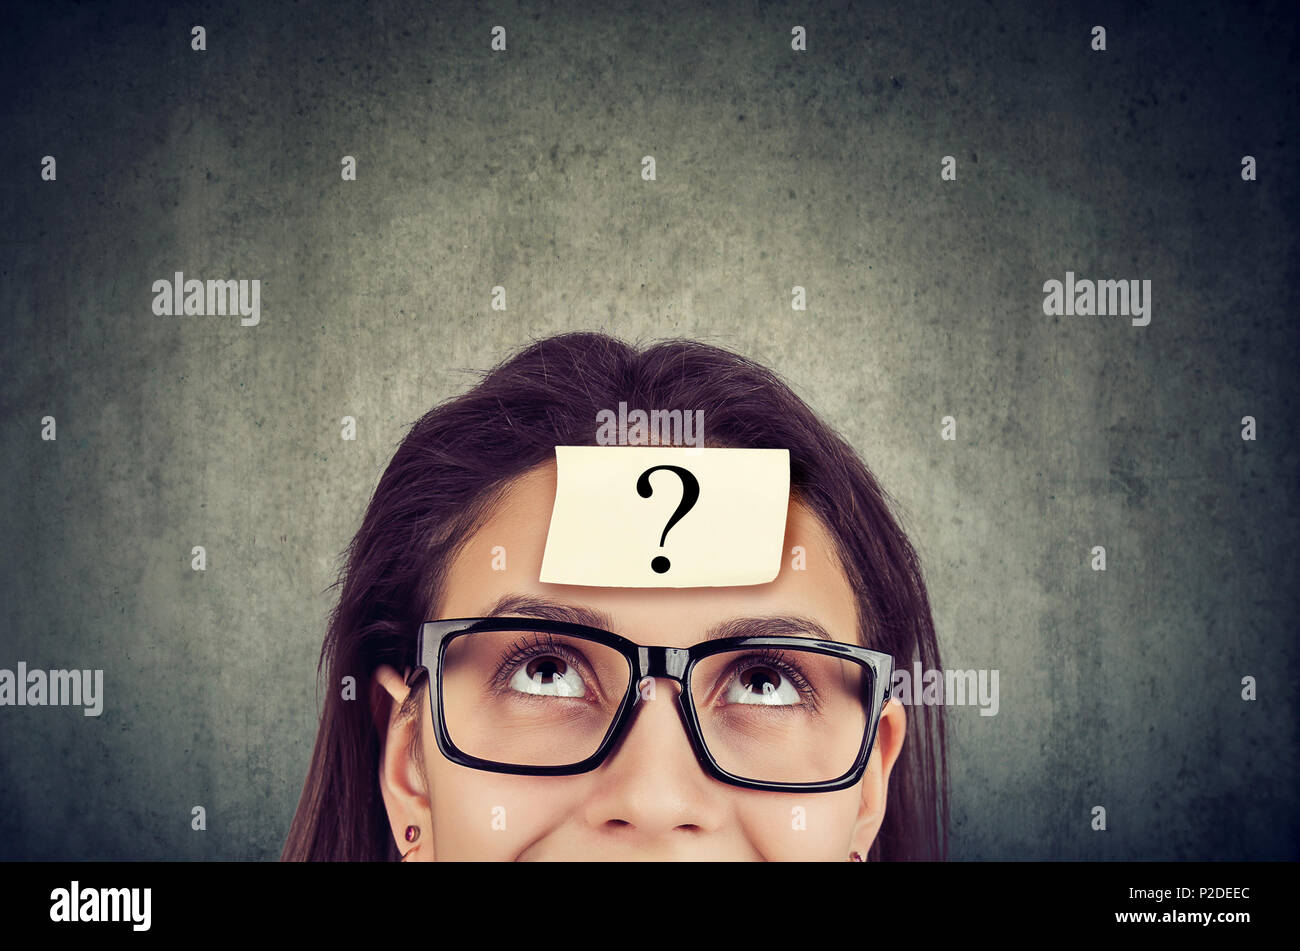 Young woman wearing black glasses with question mark on forehead looking up. Stock Photo